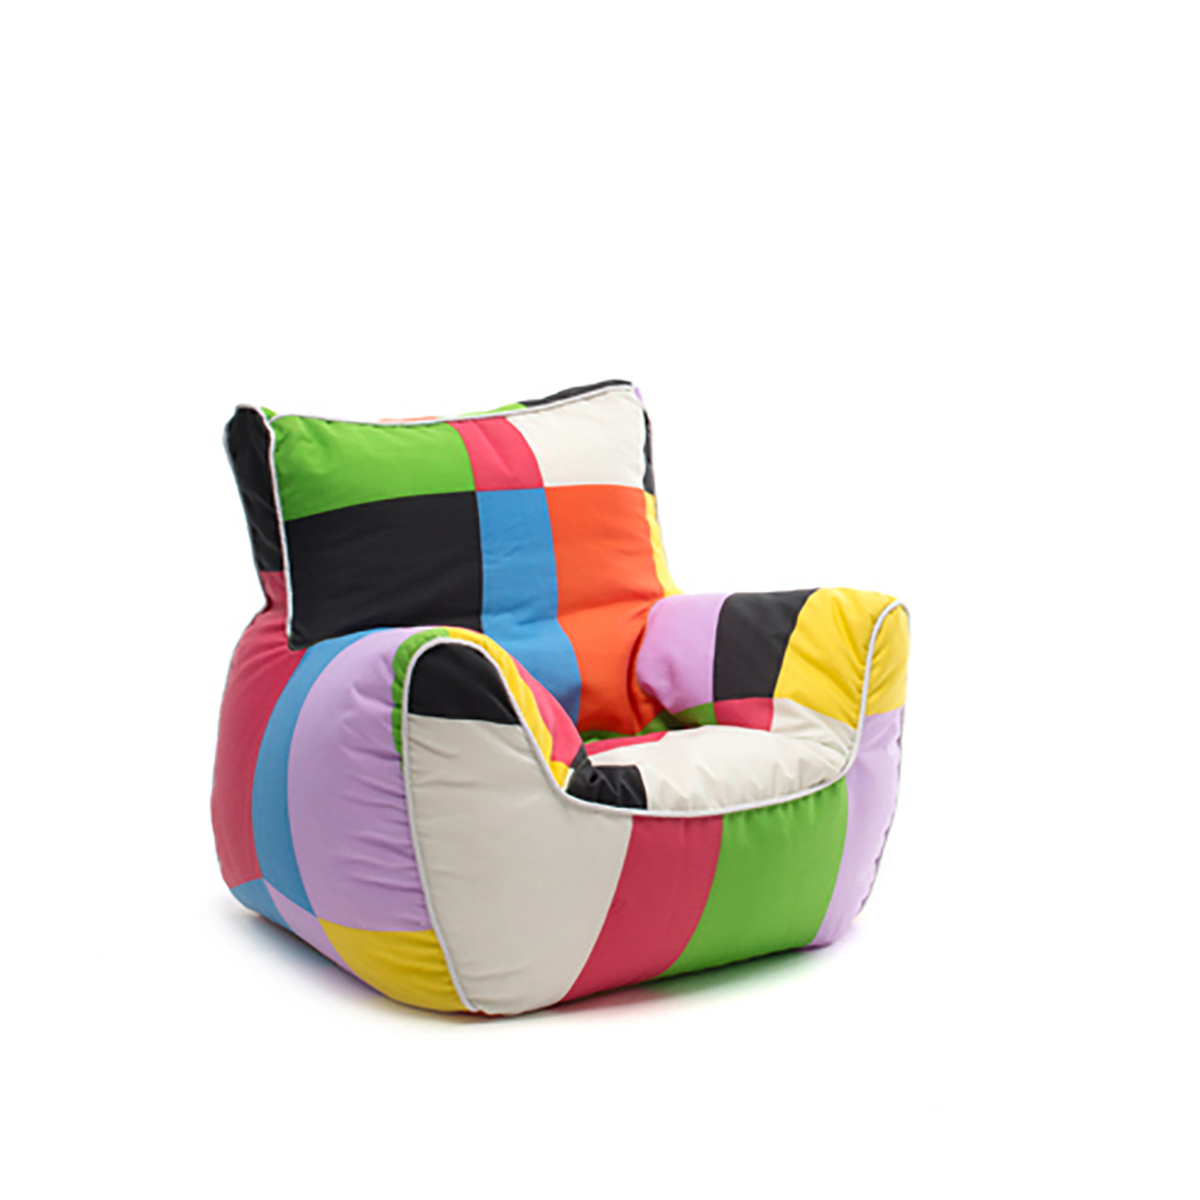 LOVEThESIGN | Poltrona Bamp - Patchwork